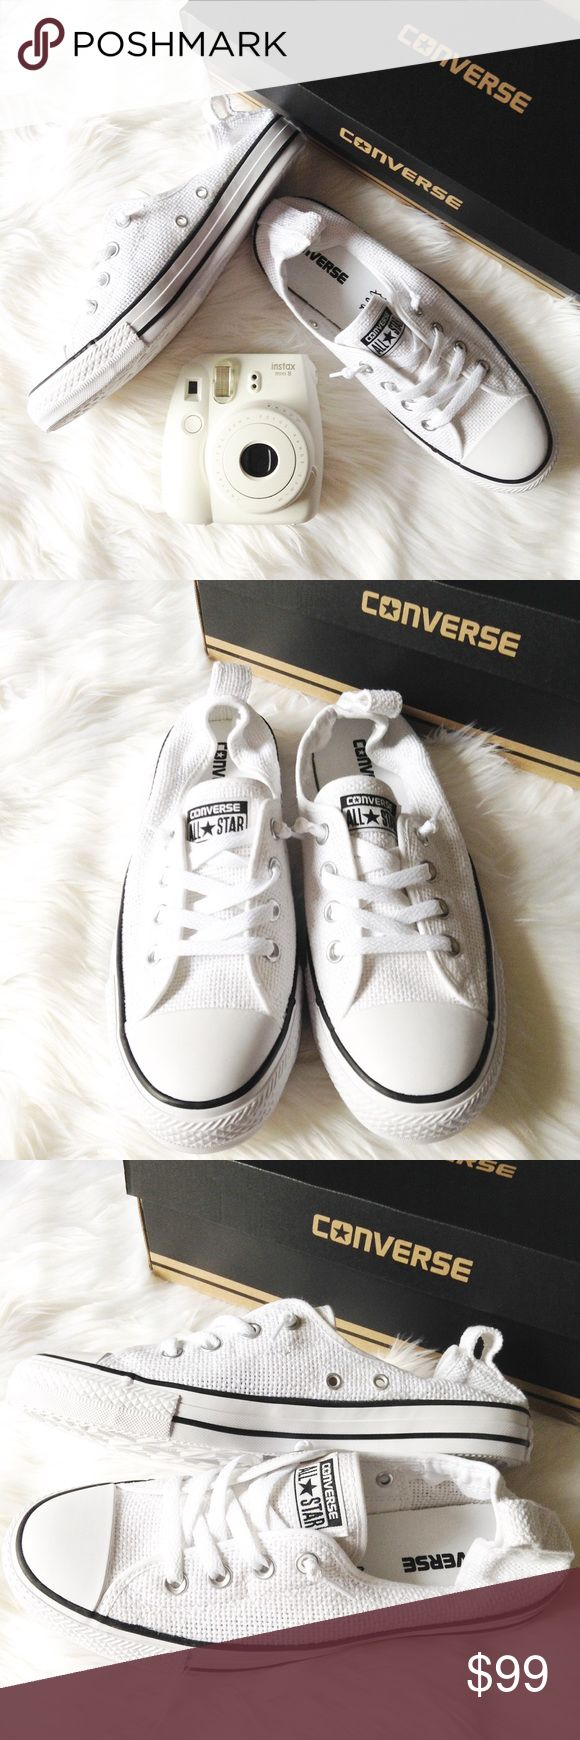 Converse slip ons Brand new, never used. Comes with its original box. Made in Vietnam. Converse Shoes